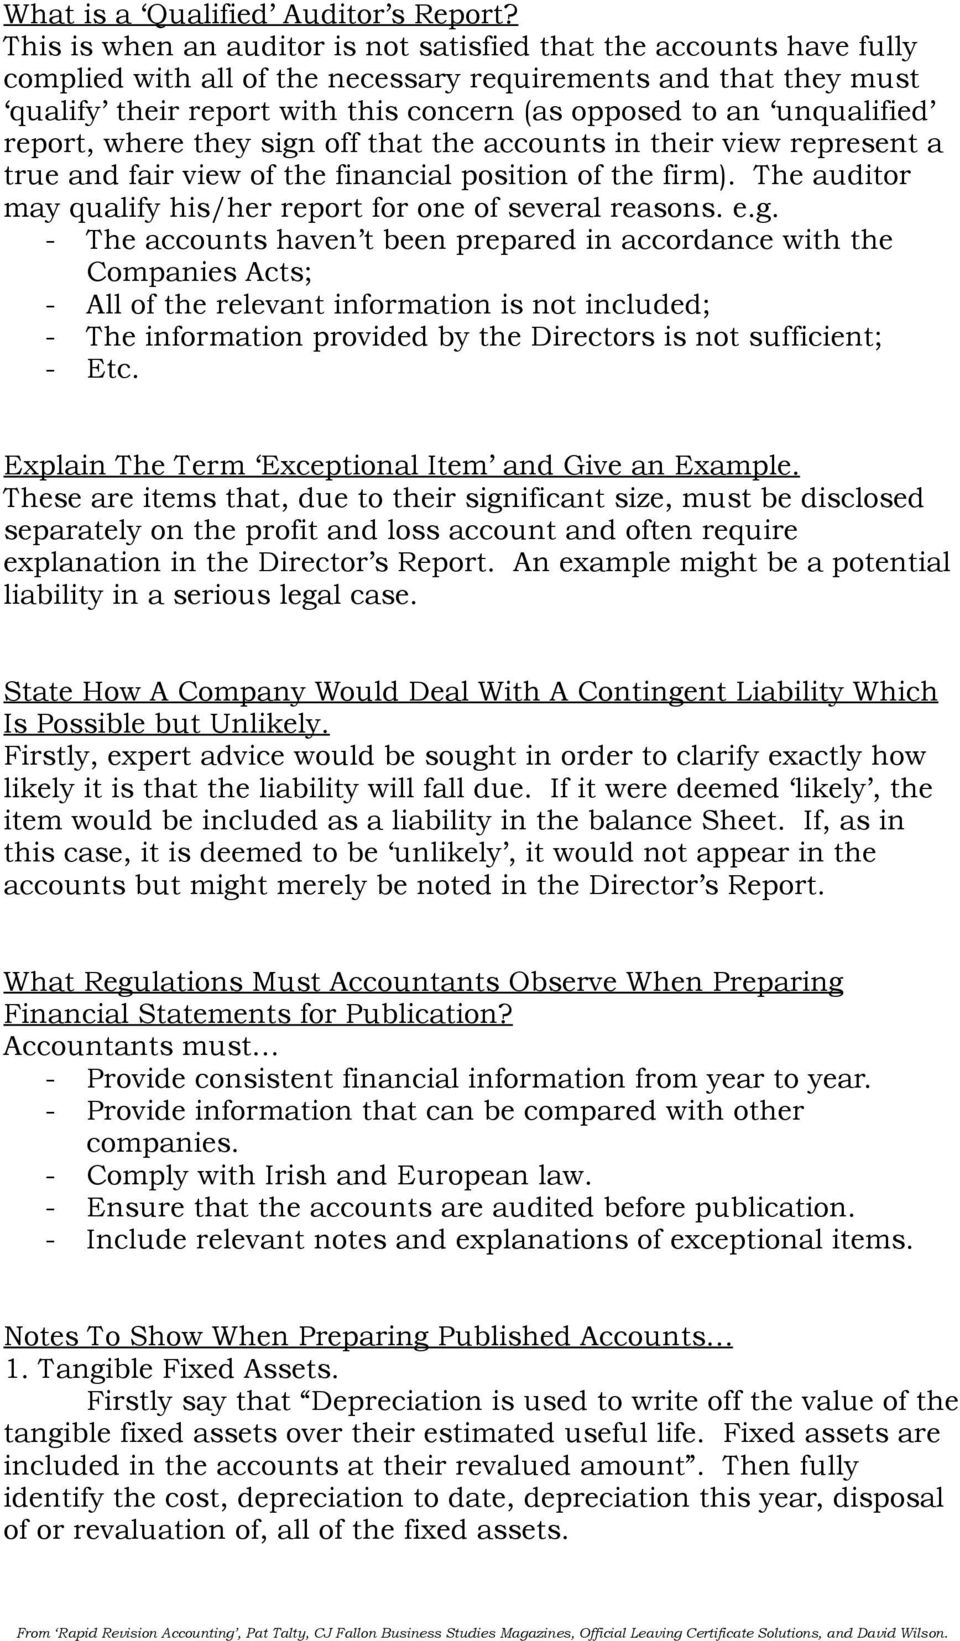 Why Do Farmers / Clubs / Firms / Anyone Prepare Accounts? To